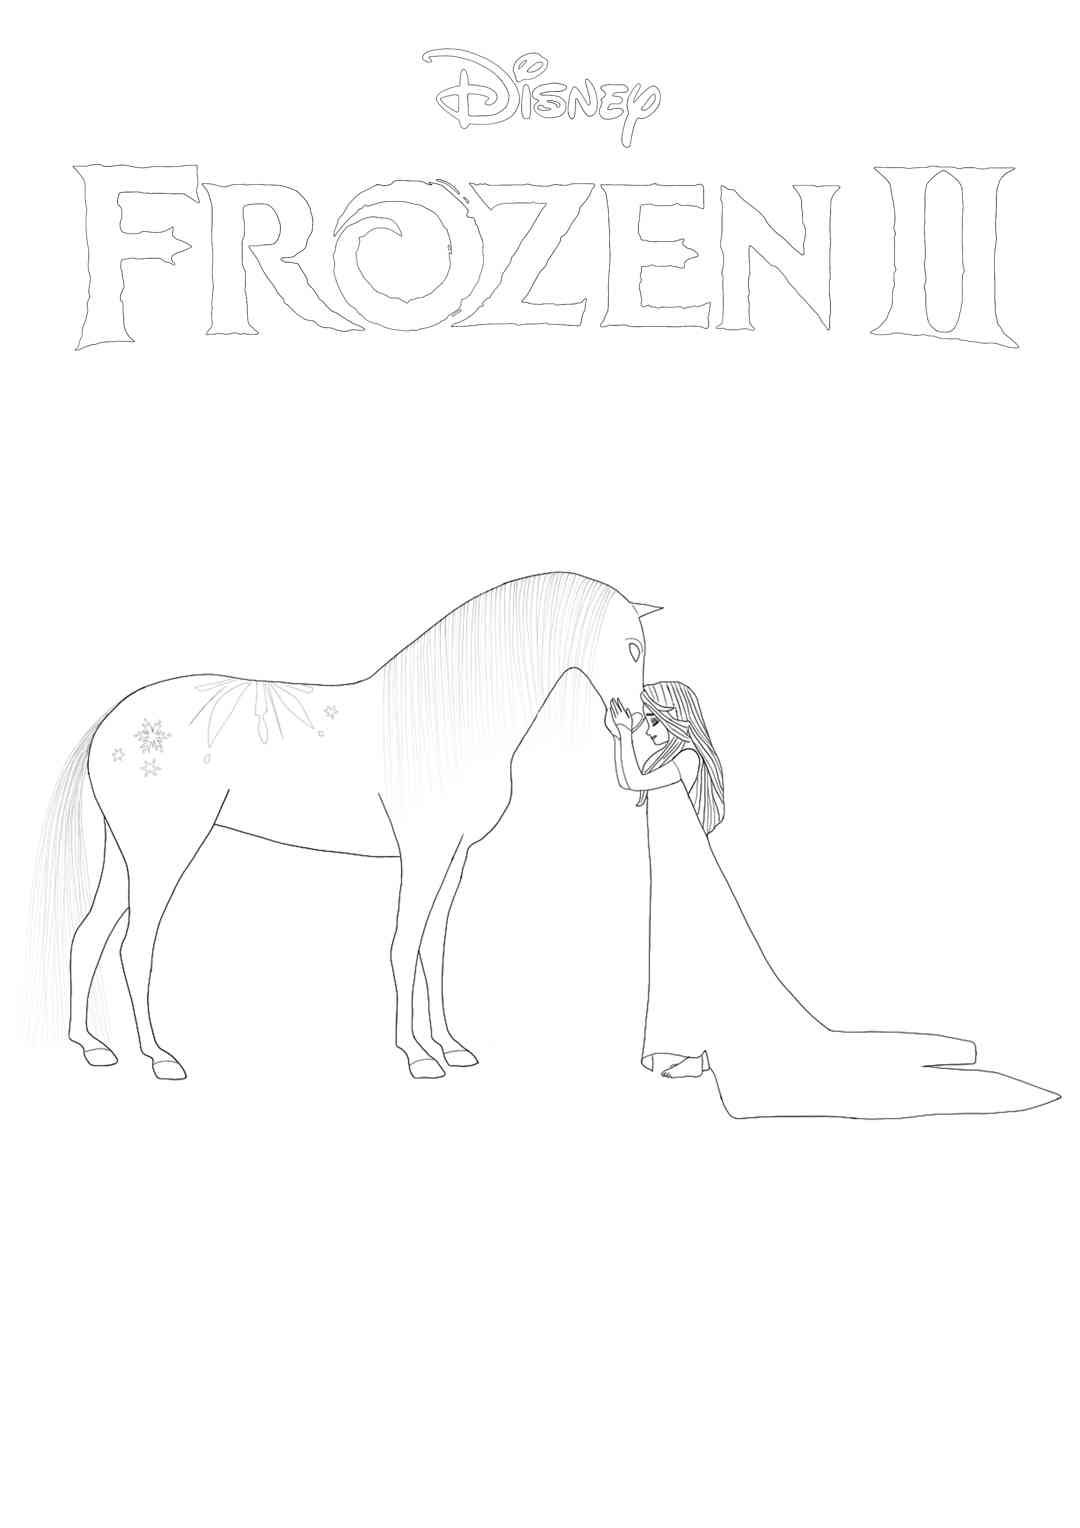 Free Frozen 2 Elsa And Nokk Coloring Page Print Or Download Frozen Ii Coloring Pictures Printable Elsa Coloring Pages Coloring Pages Frozen Coloring Pages